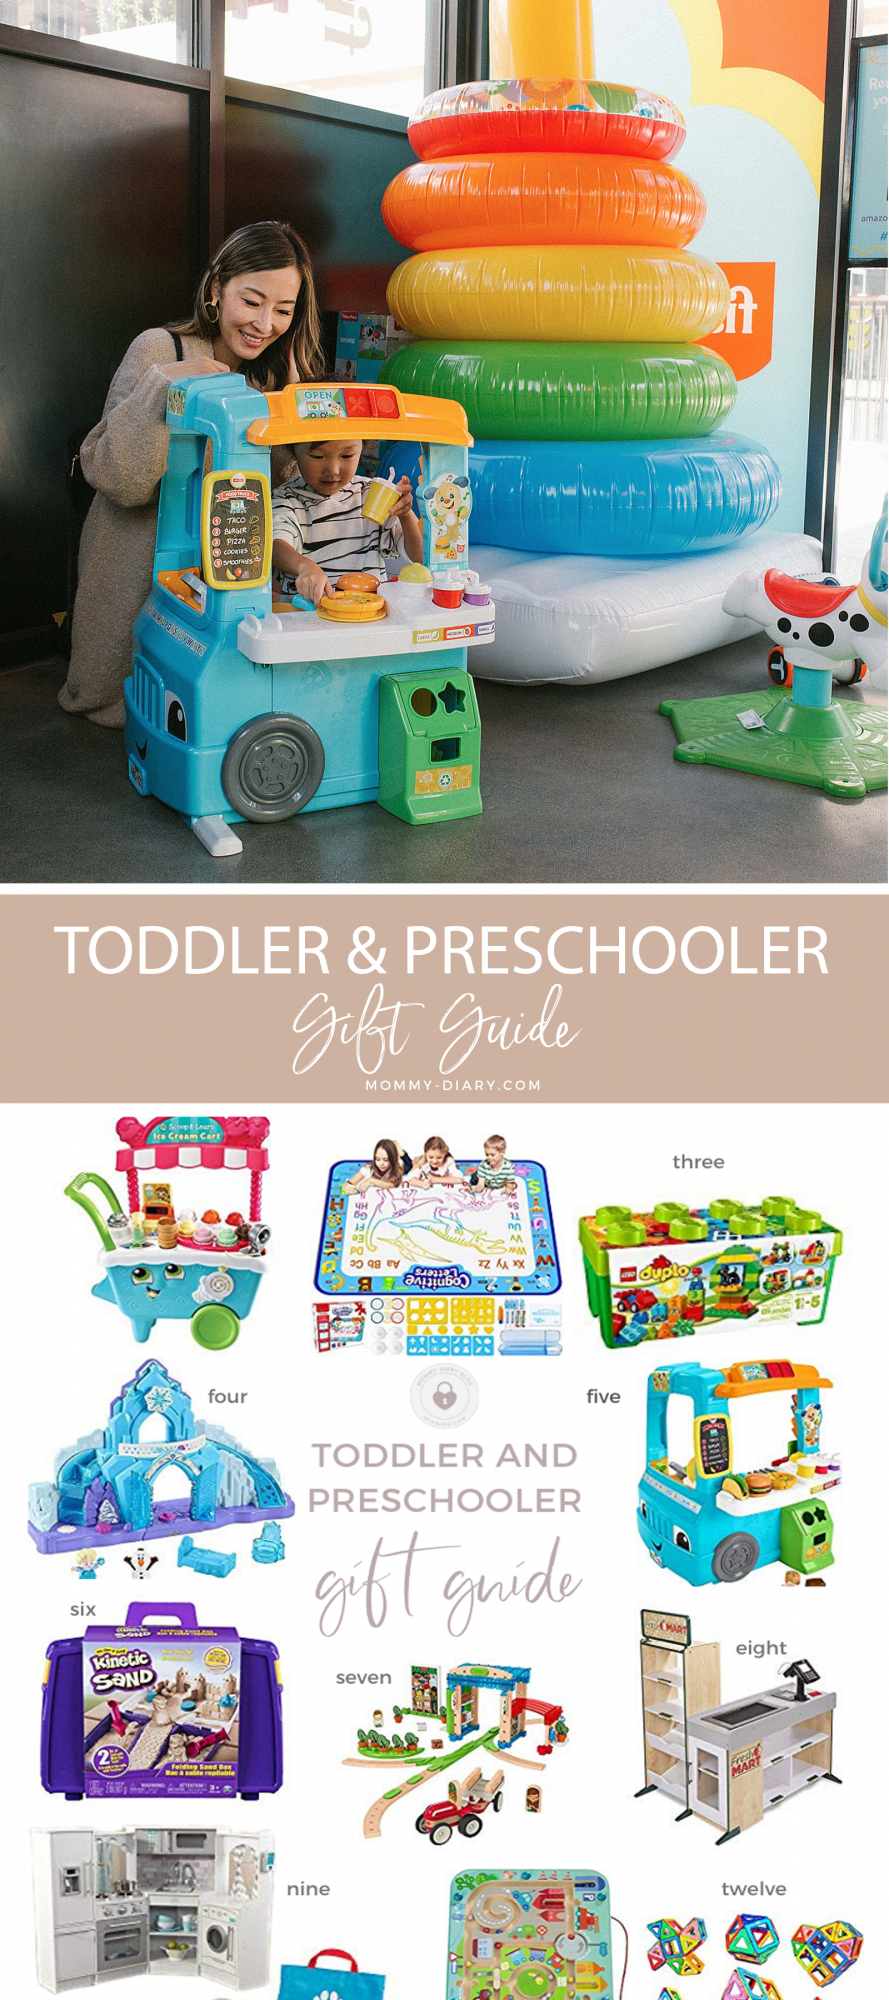 toddler-preschooler-gift-guide copy